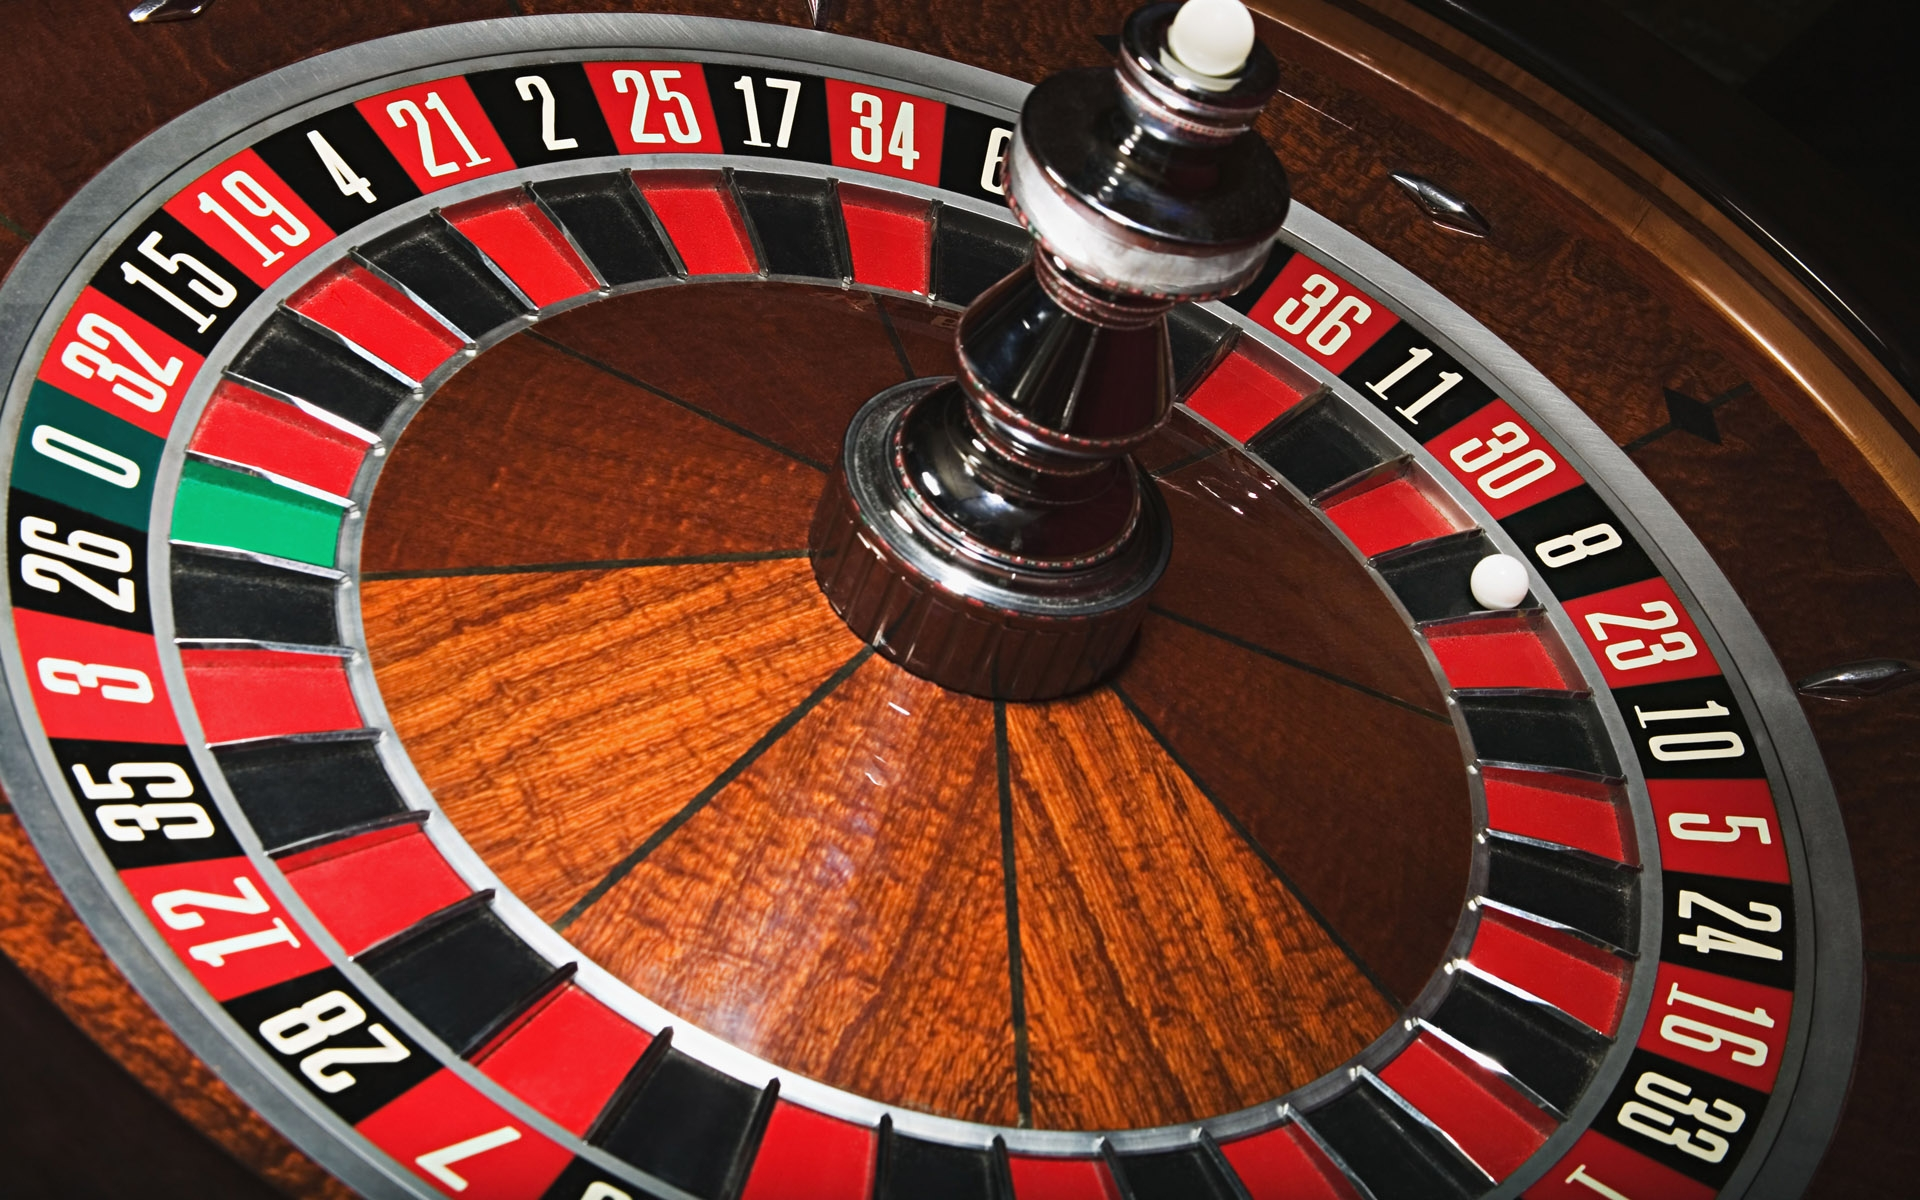 Important Selection Criteria For Choosing An Online Casino - Gambling